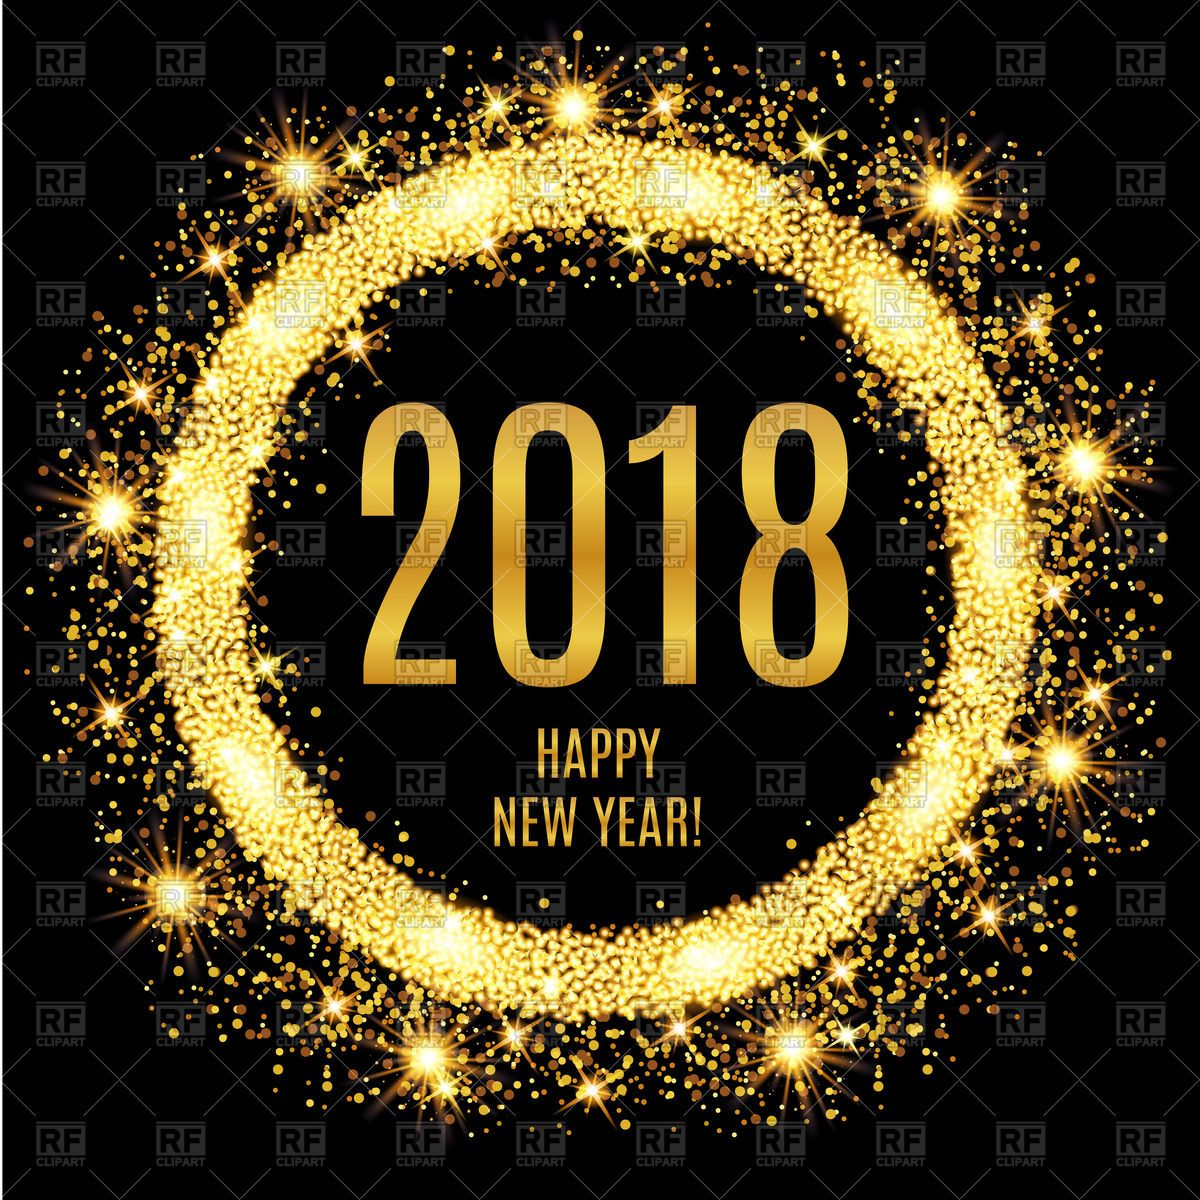 2018 Happy New Year Glowing Gold Background Vector Image Vector